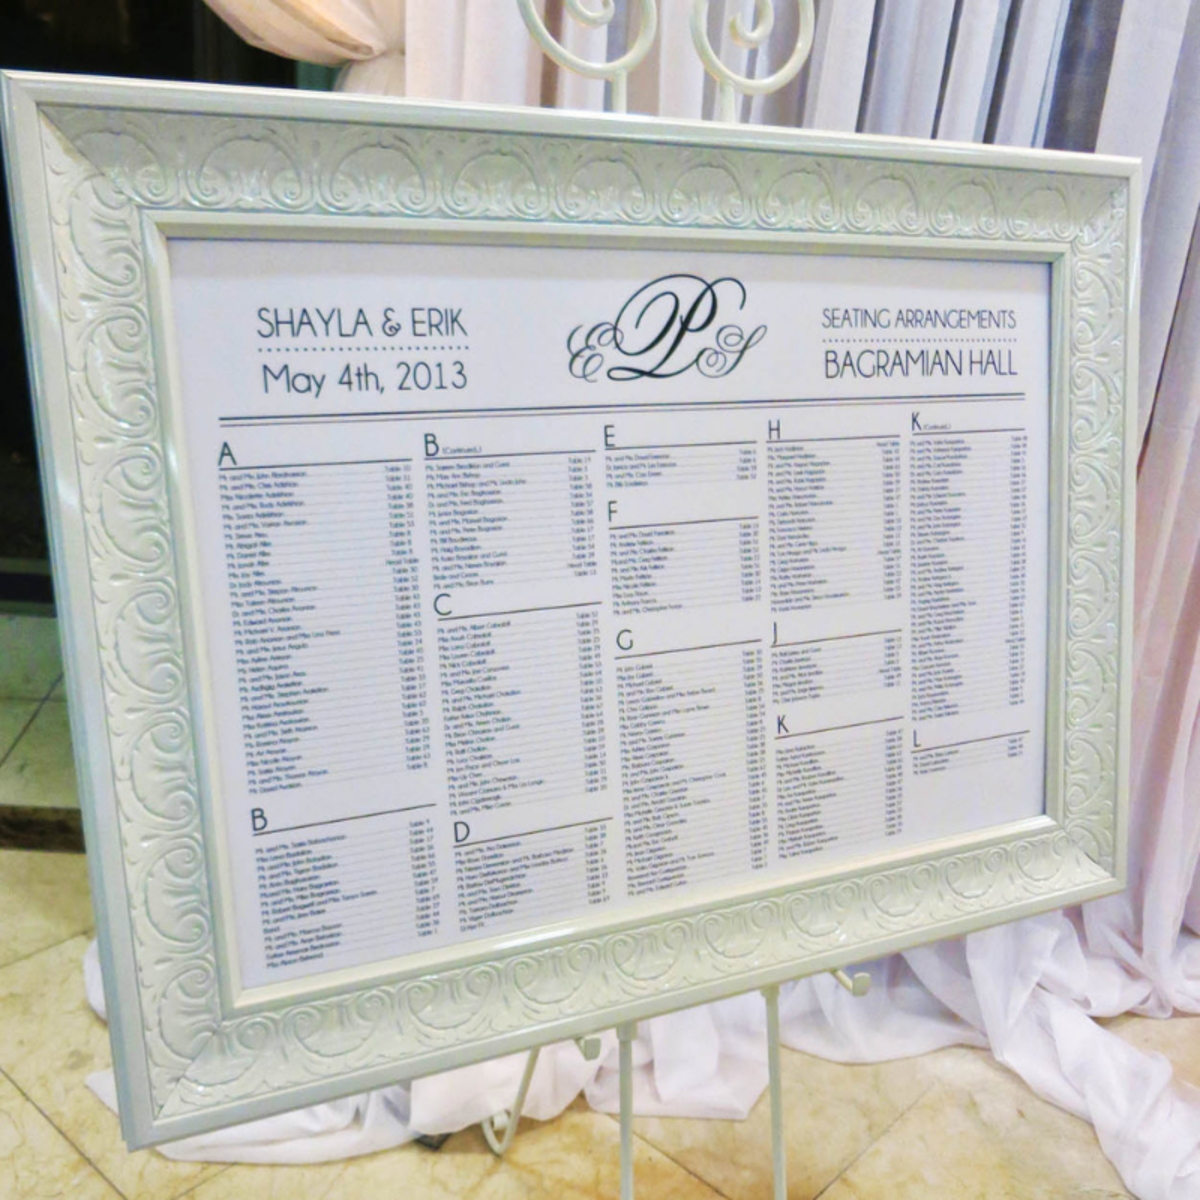 At many wedding receptions, mounted seating-lists are displayed to help guests find their assigned tables.